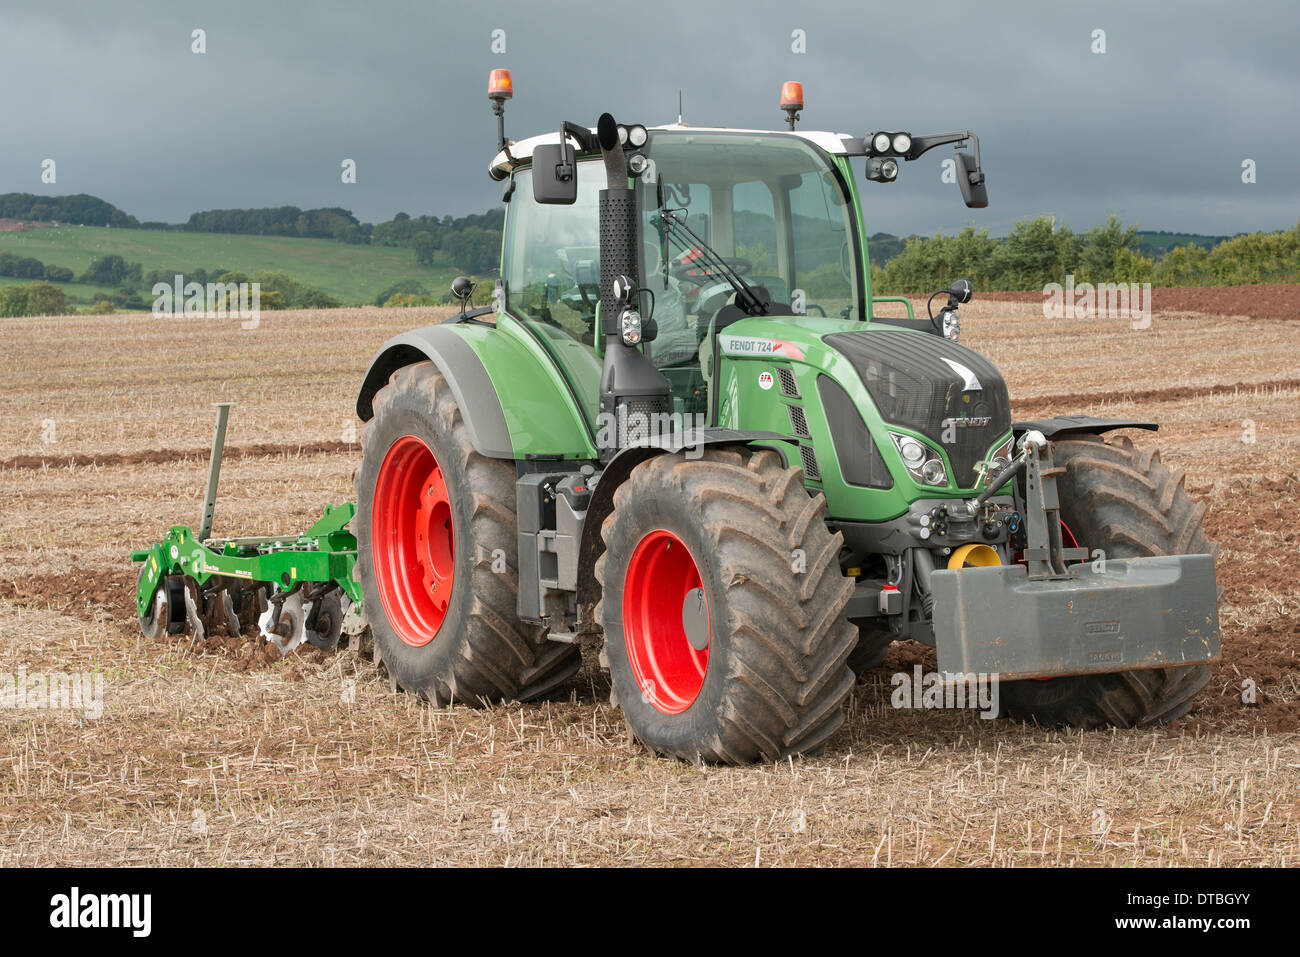 Fendt 724 tractor and Simba DTX cultivator at the 63rd British National  Ploughing Championship in 2013